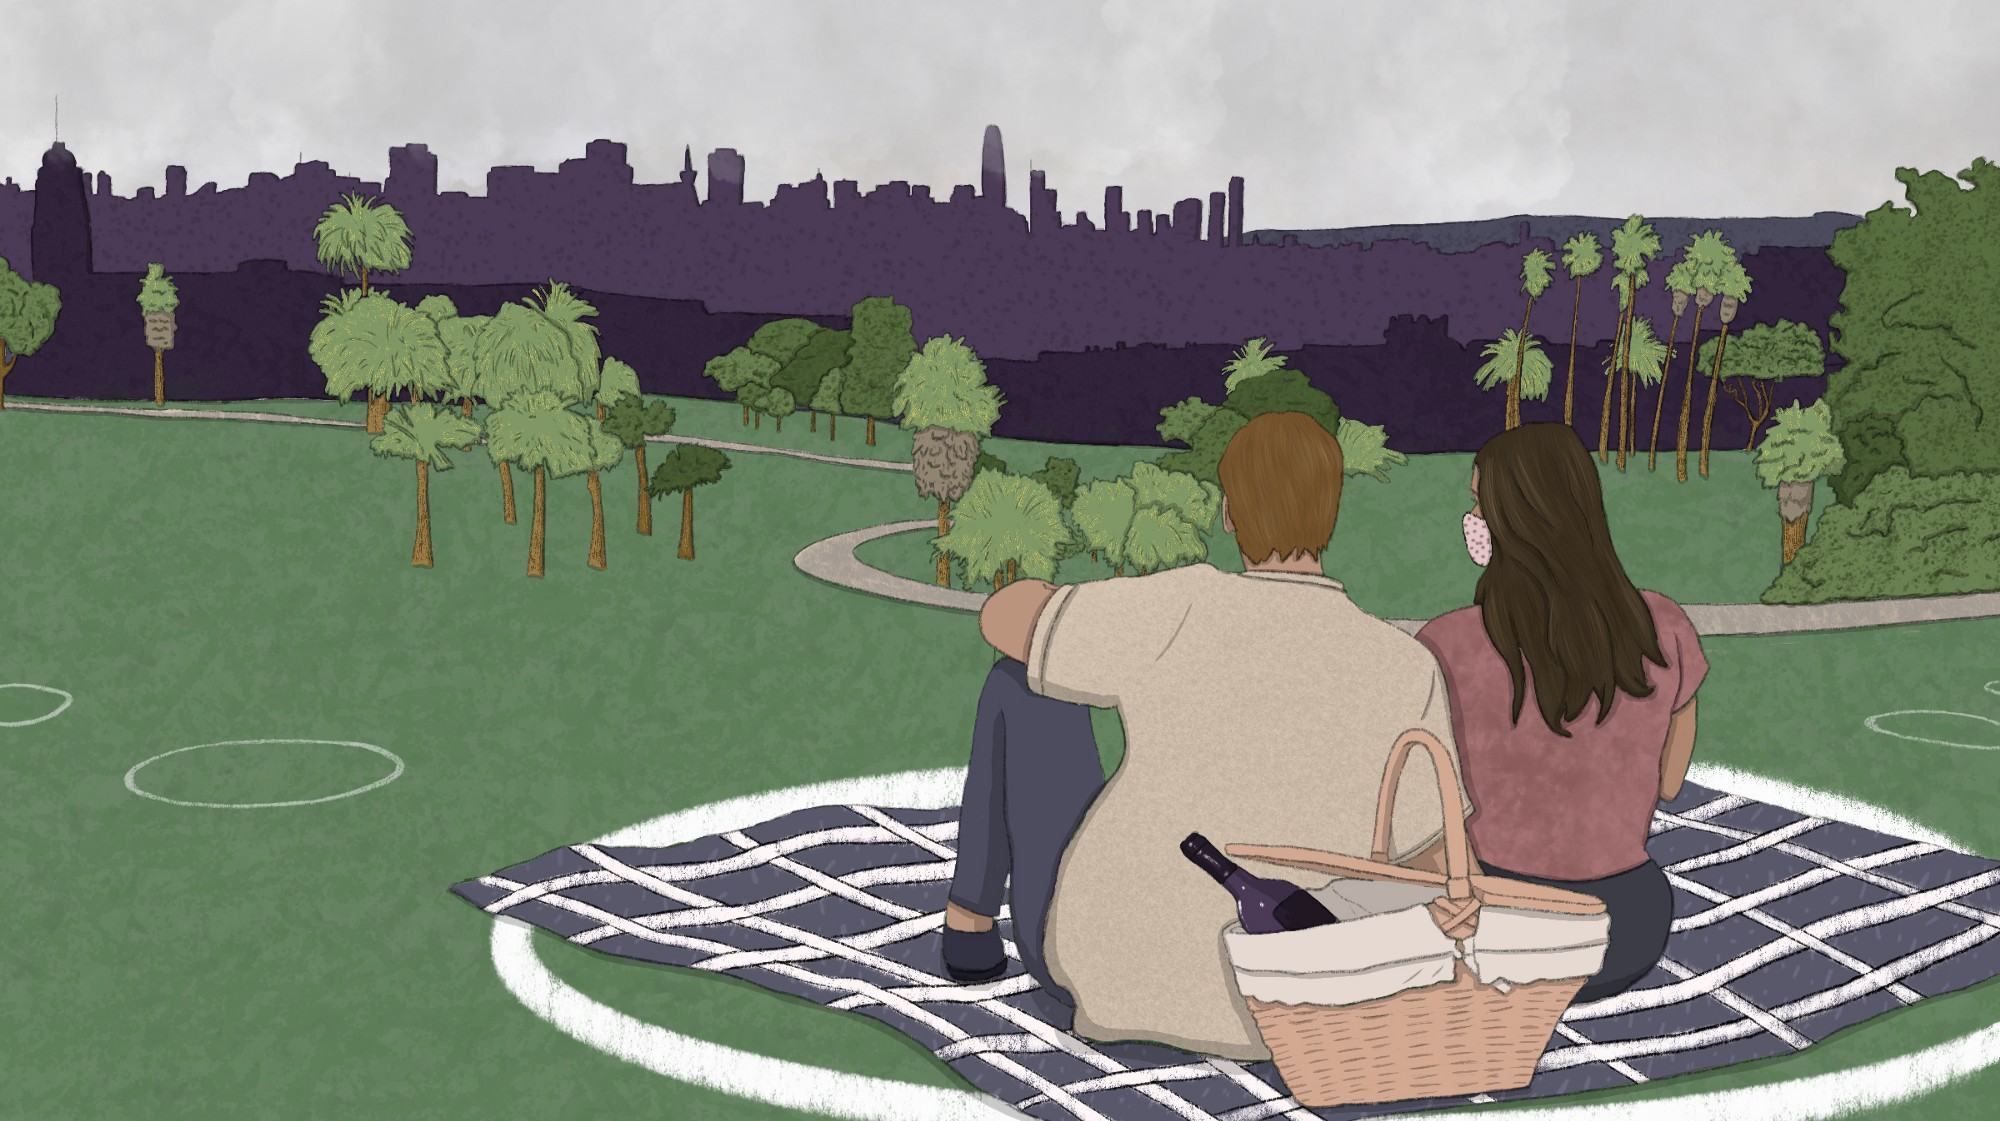 Two people sitting on a picnic blanket in a large white circle in a socially distanced park.